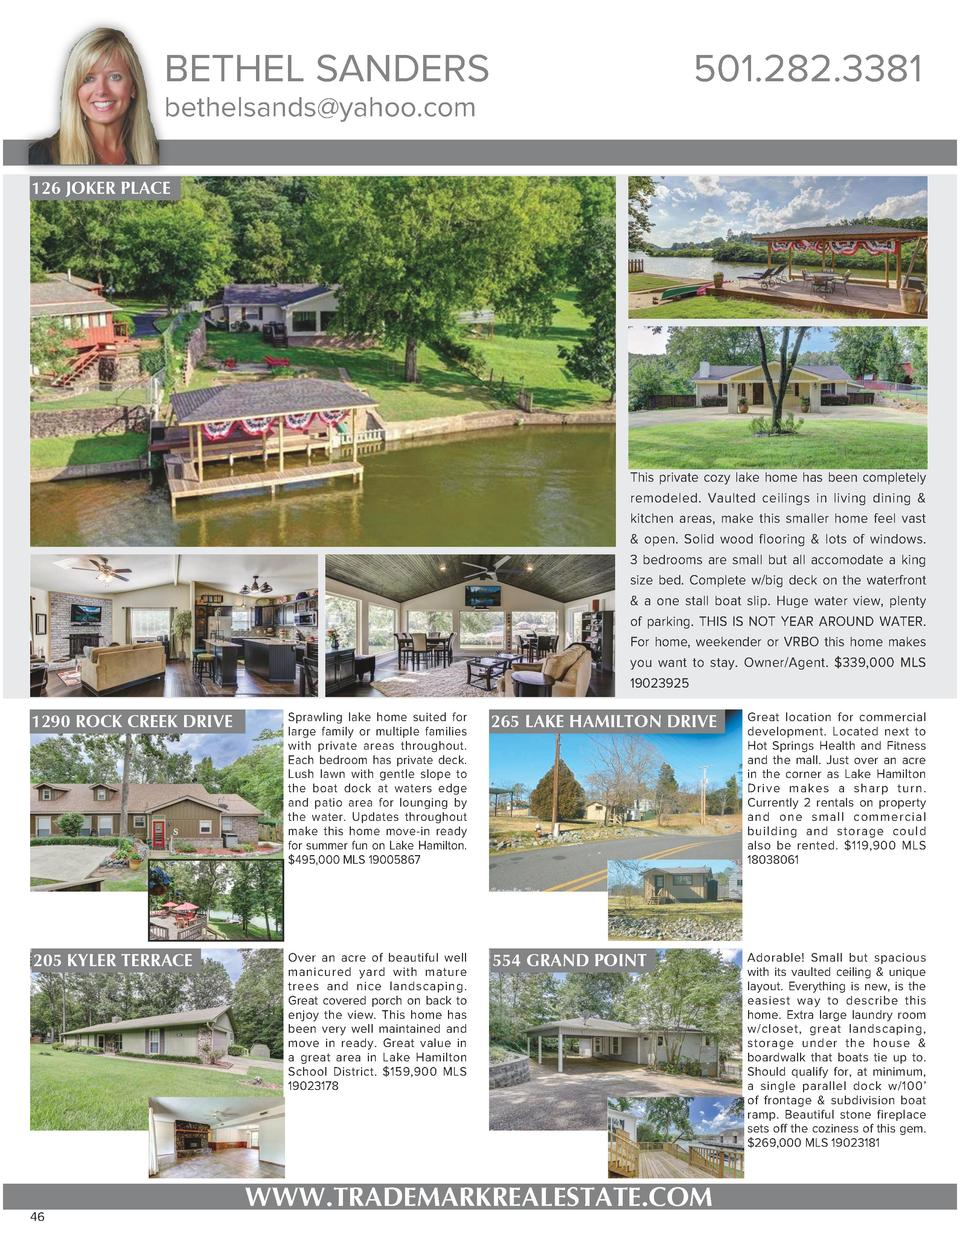 BETHEL SANDERS  501.282.3381  bethelsands yahoo.com 126 JOKER PLACE  This private cozy lake home has been completely remod...